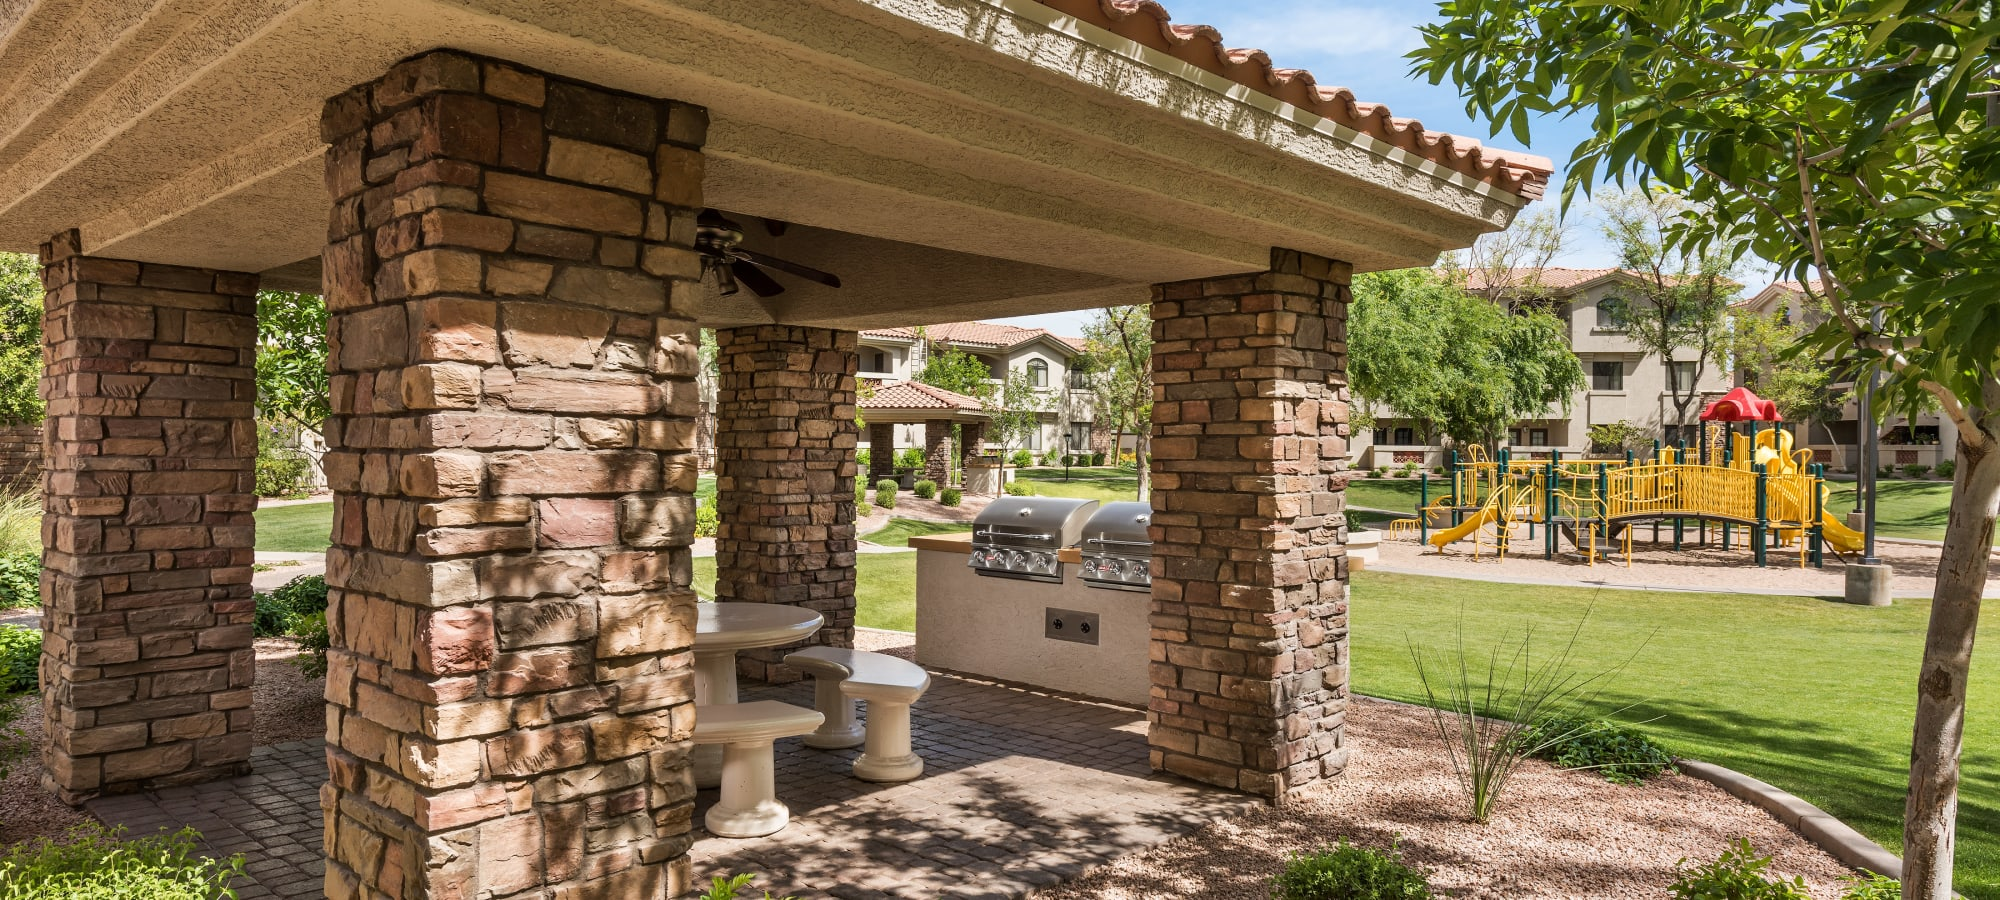 Covered BBQ grills and playground at San Hacienda in Chandler, Arizona